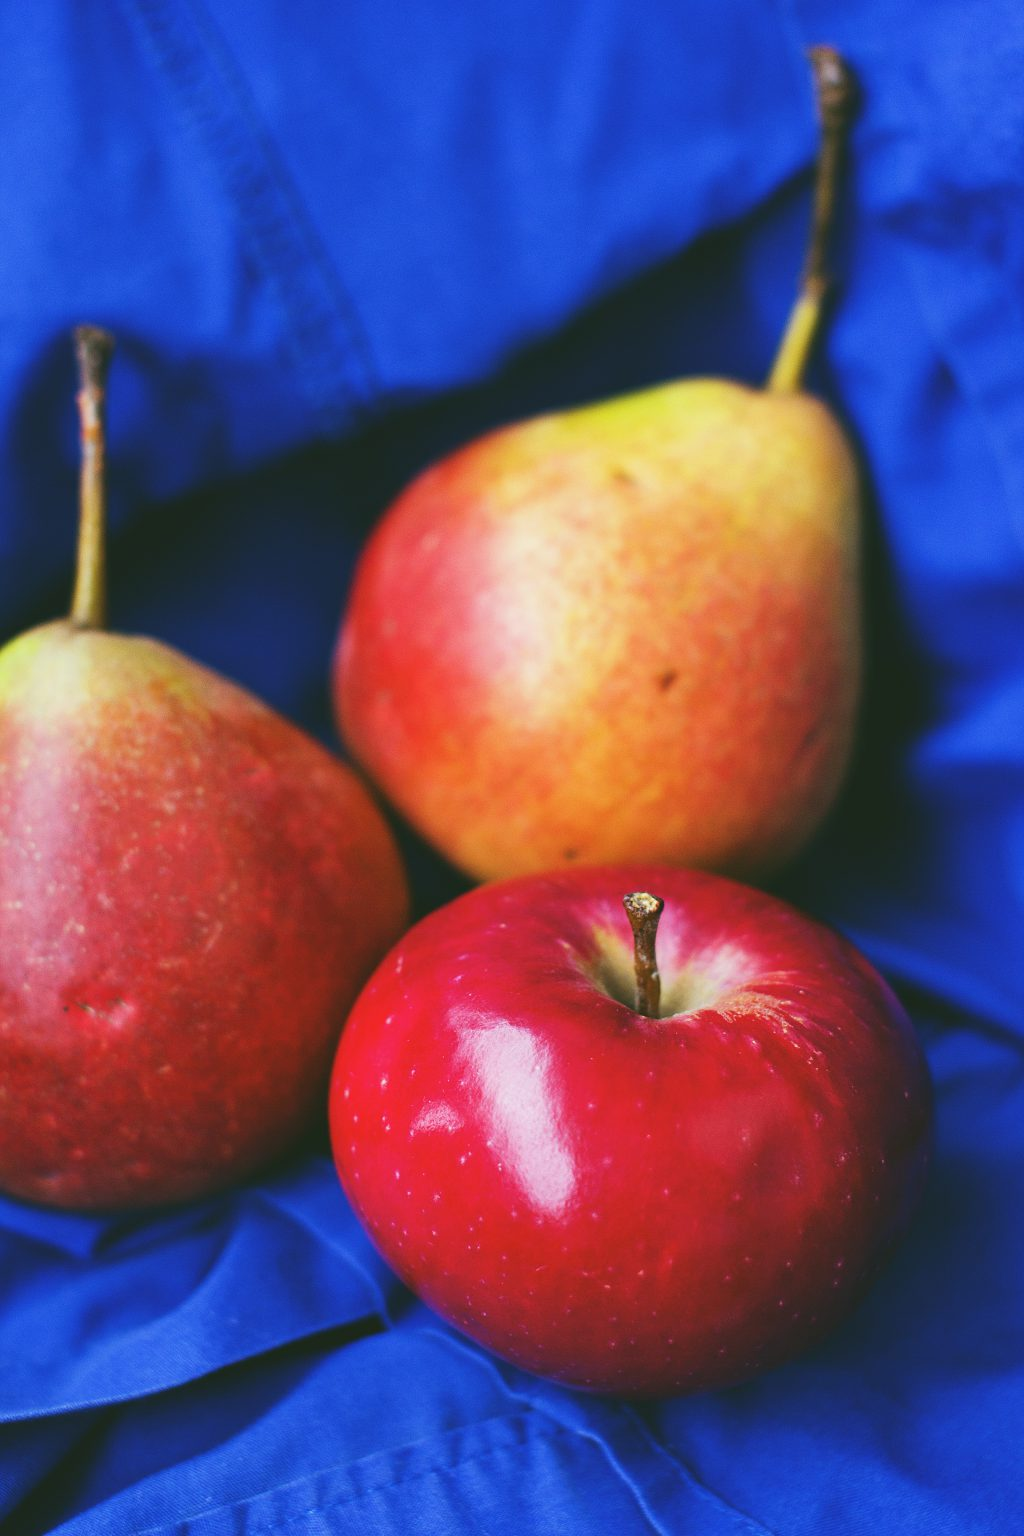 Apple and pears - free stock photo